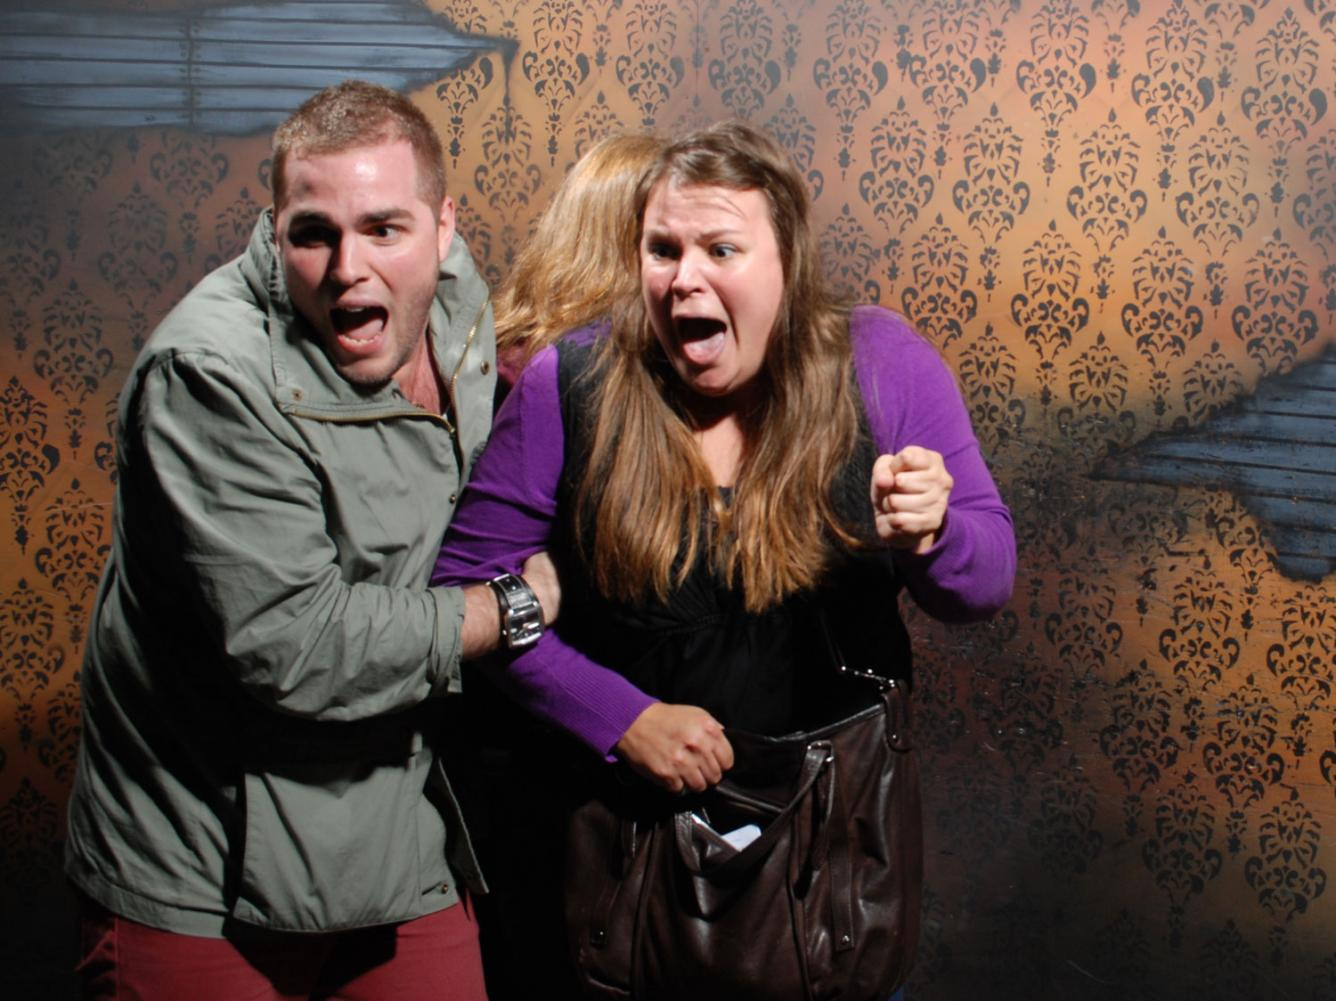 Nightmares Fear Factory Top 40 September 2013 pic0028